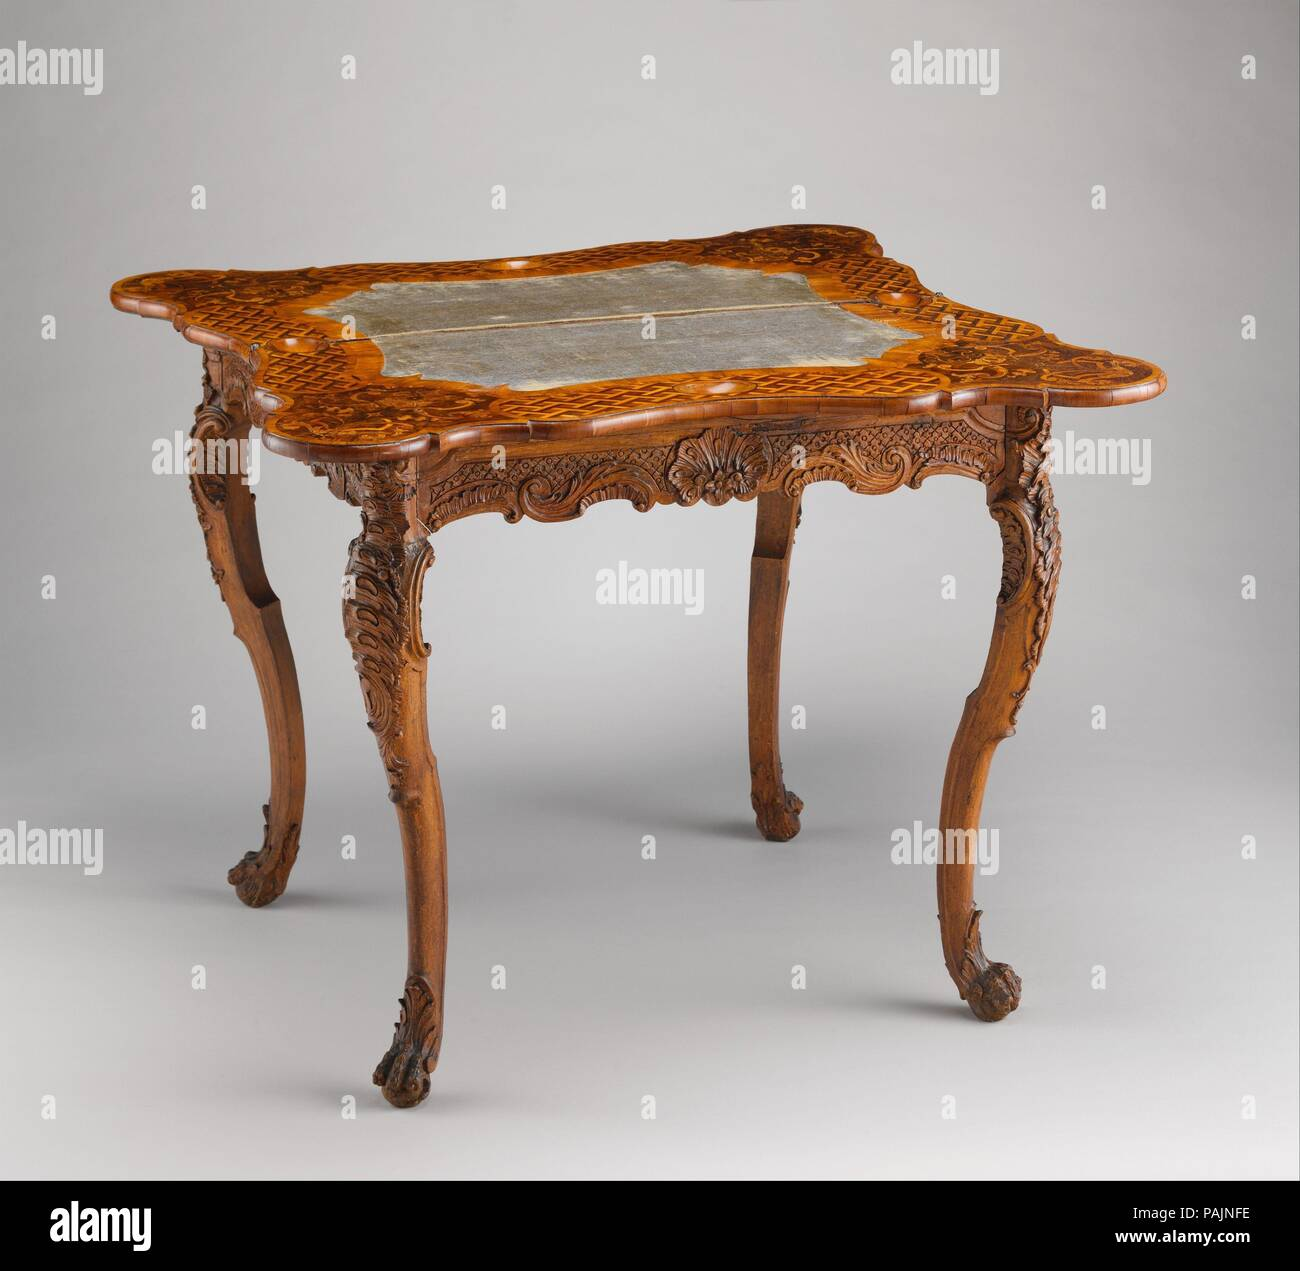 Card table. Culture: German, Bamberg. Dimensions: closed: 29 1/2 × 37 1/2 × 18 1/2 in. (74.9 × 95.3 × 47 cm). Date: ca. 1745-50.  According to the Bamberg city archives, Nicolaus Bauer (active 1758-1771) made gaming tables for Seehof Castle, the summer residence of the bishops of Würzburg and Bamberg, during the 1750s and 60s. This example, coming from Seehof, can be included in his output. The folding top exhibits marquetry motifs typical of German workshops, while carved asymmetrical shellwork elements adorn the knees. Museum: Metropolitan Museum of Art, New York, USA. - Stock Image